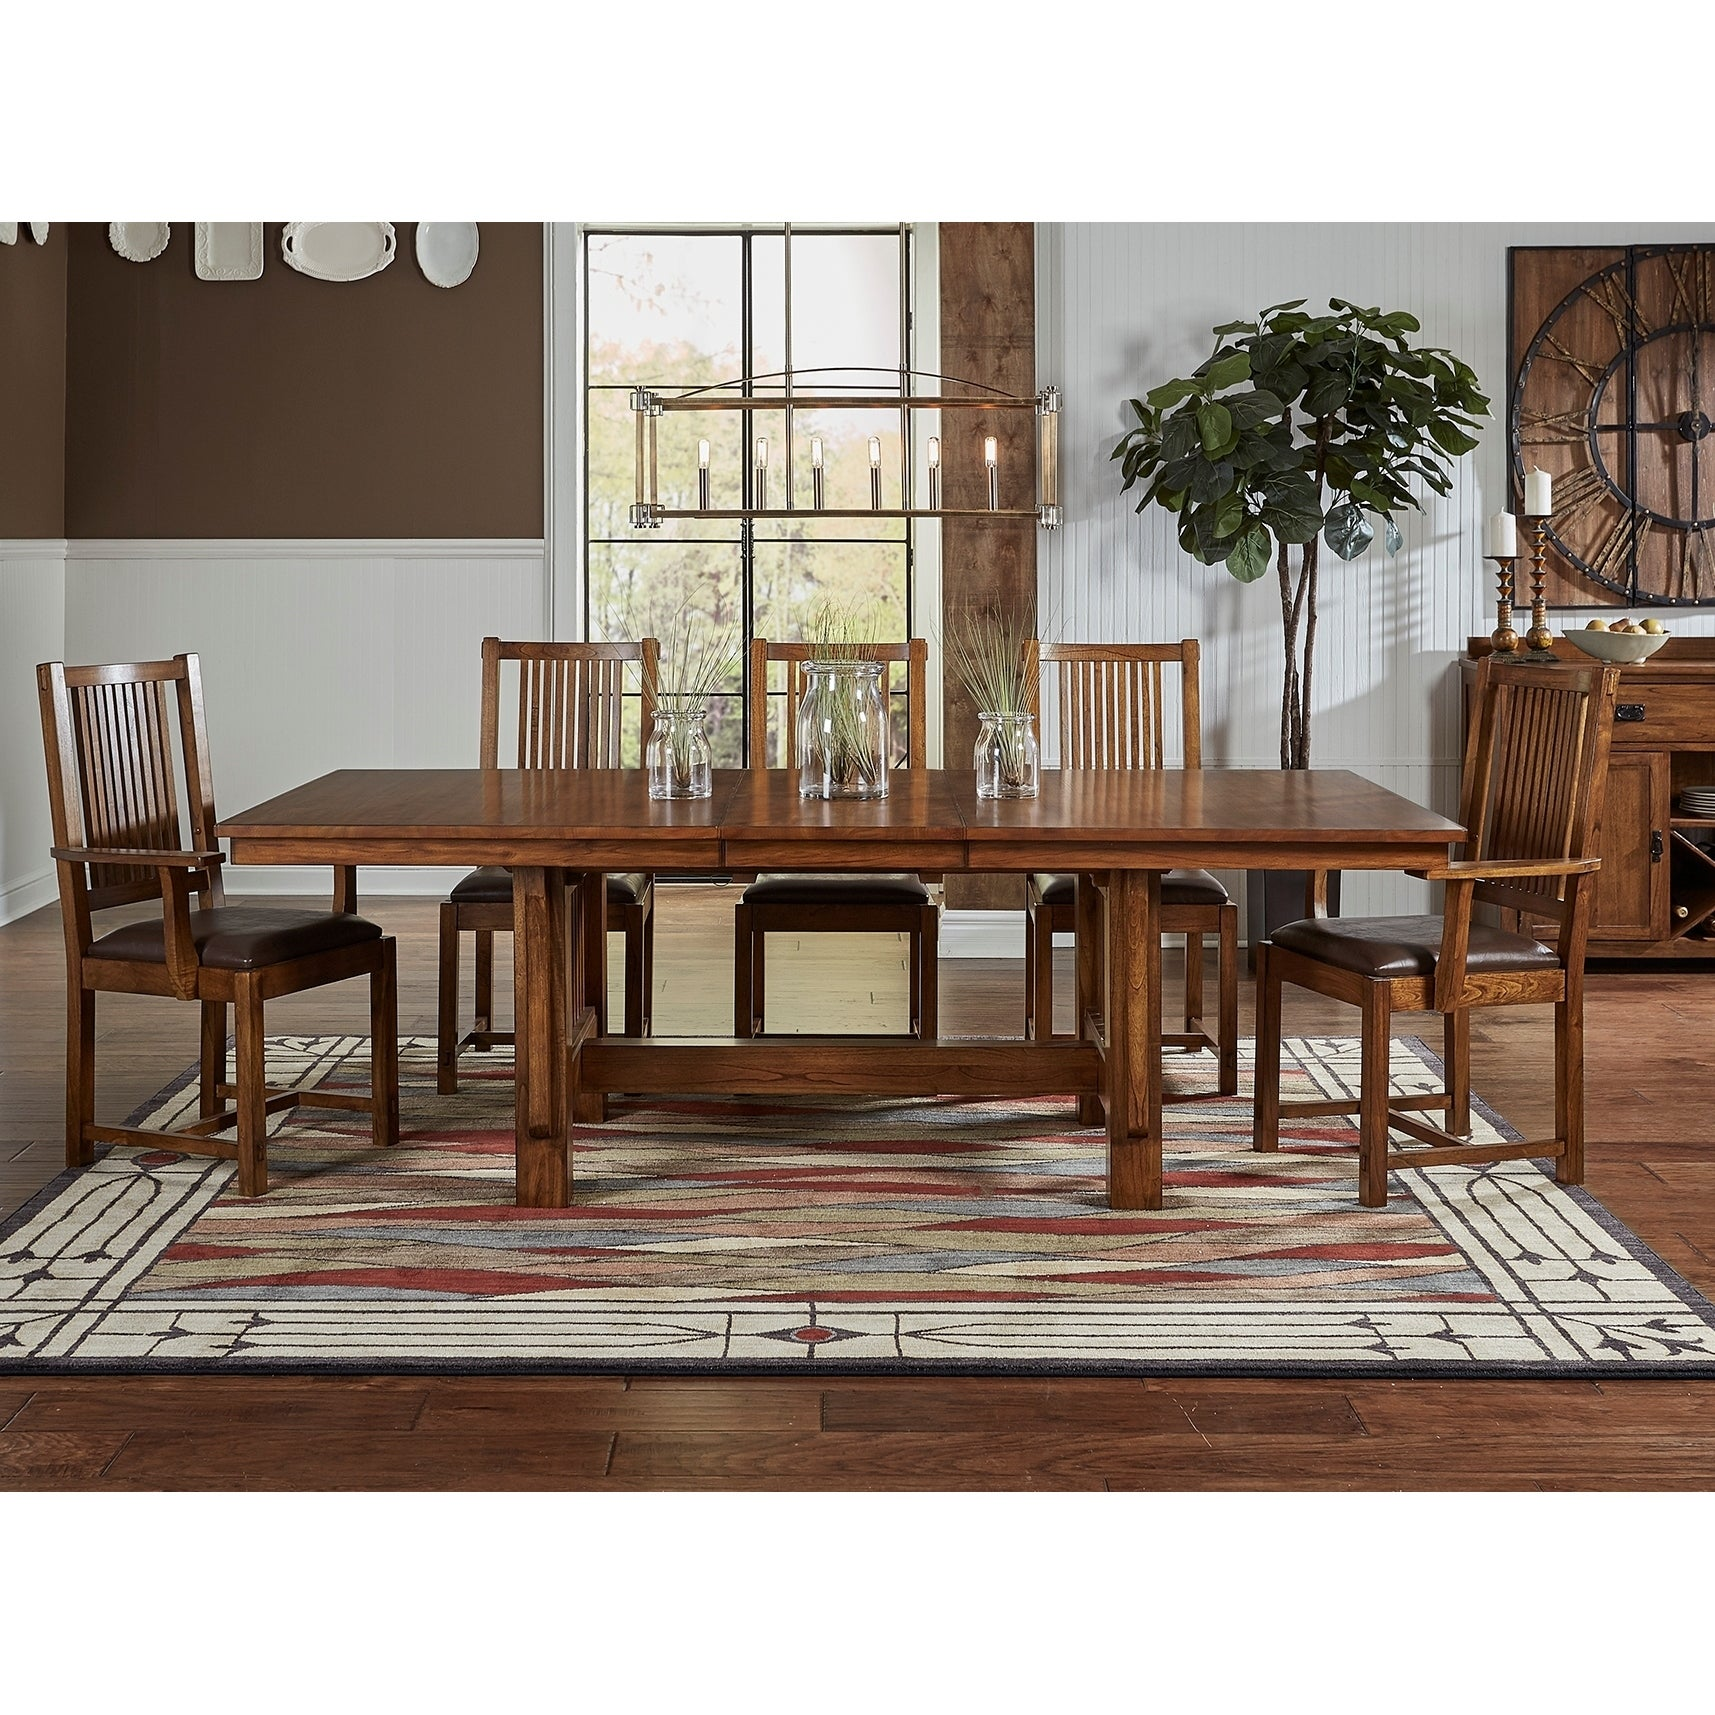 Delicieux Shop Gemma 9 Piece Solid Wood Dining Set   Free Shipping Today    Overstock.com   16119096